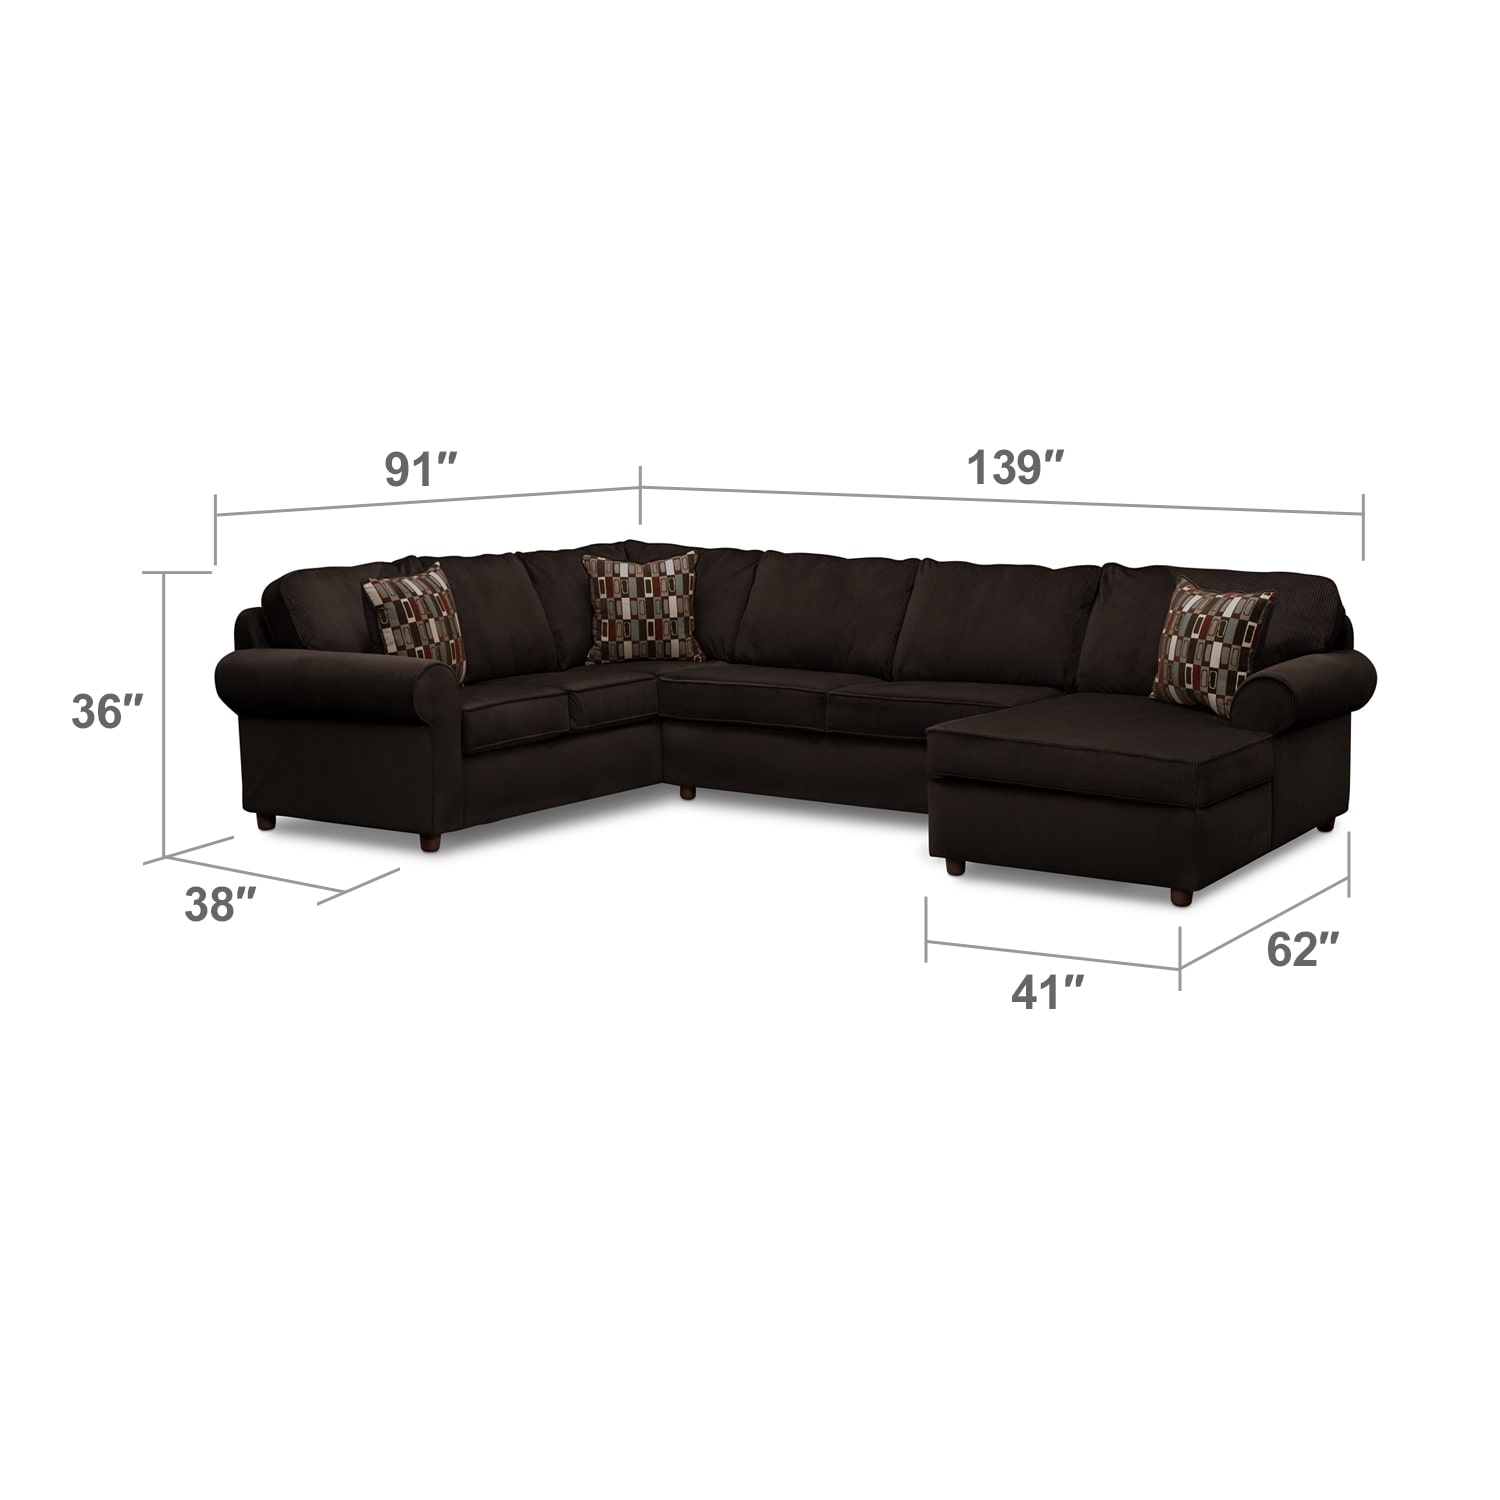 Living Room Furniture - Monarch 3-Piece Sectional - Chocolate